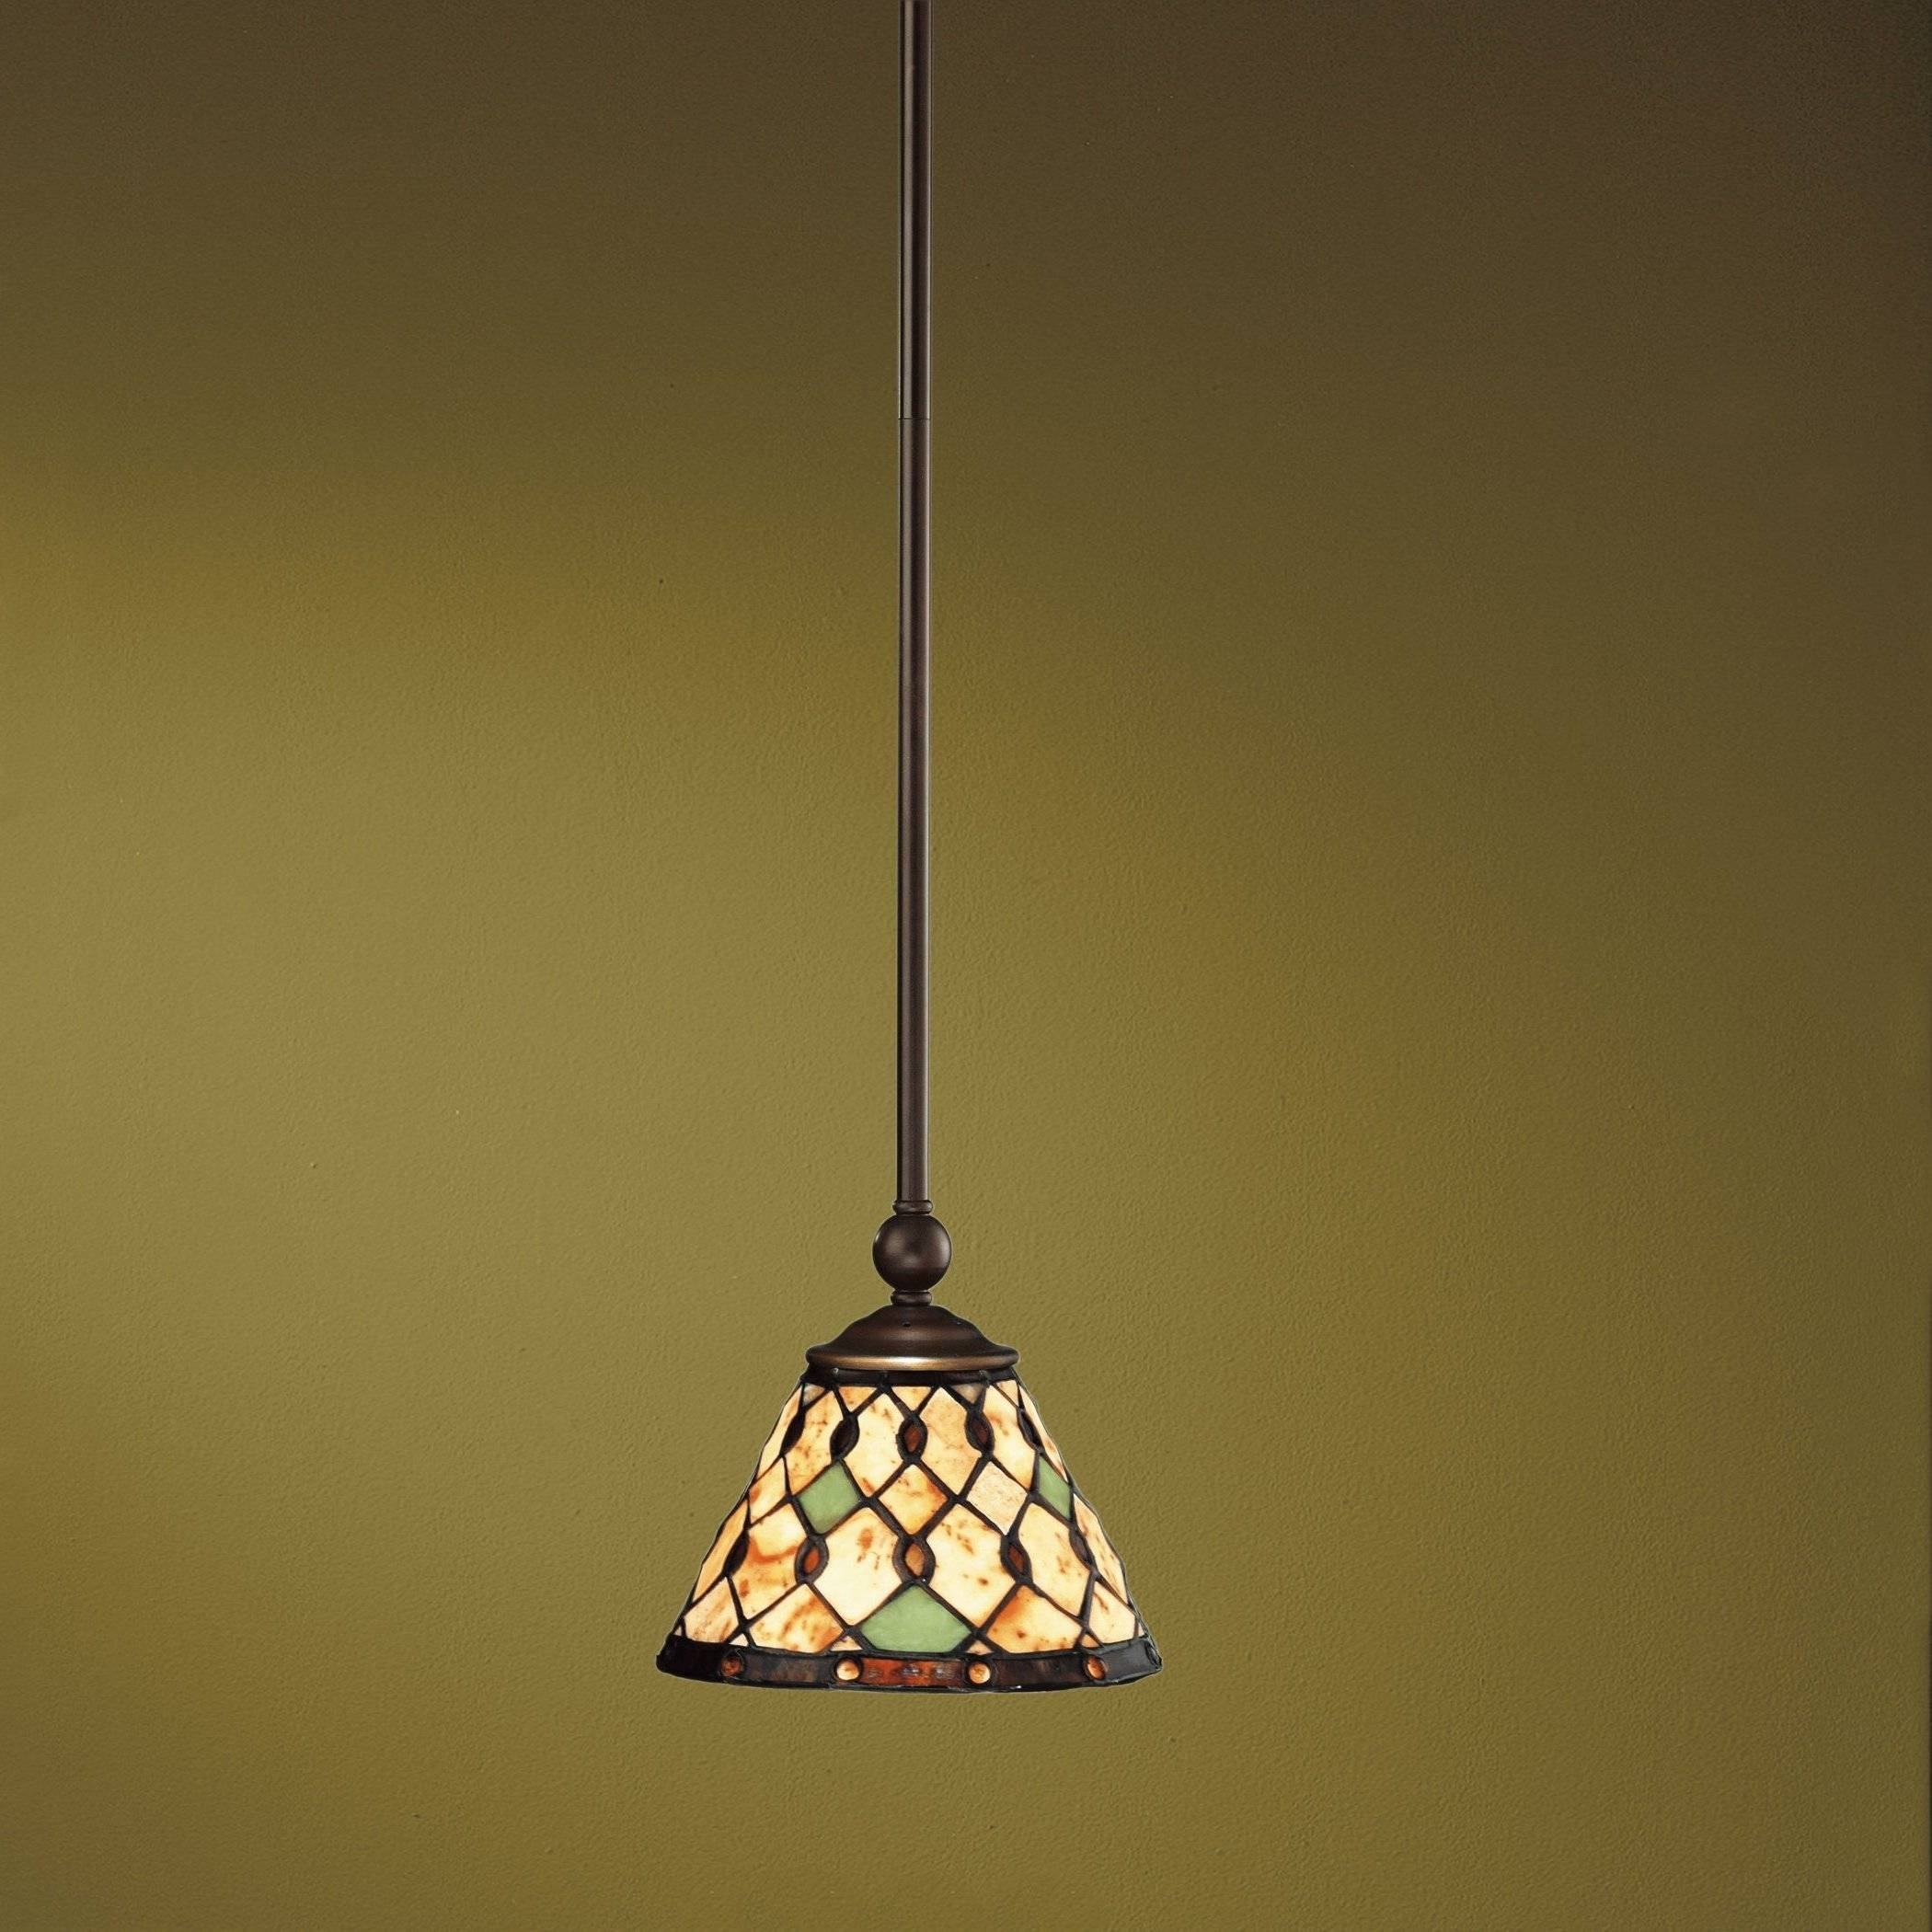 Awesome Tiffany Style Pendant Light 20 On Linear Pendant Lighting in Tiffany Mini Pendant Lights (Image 2 of 15)